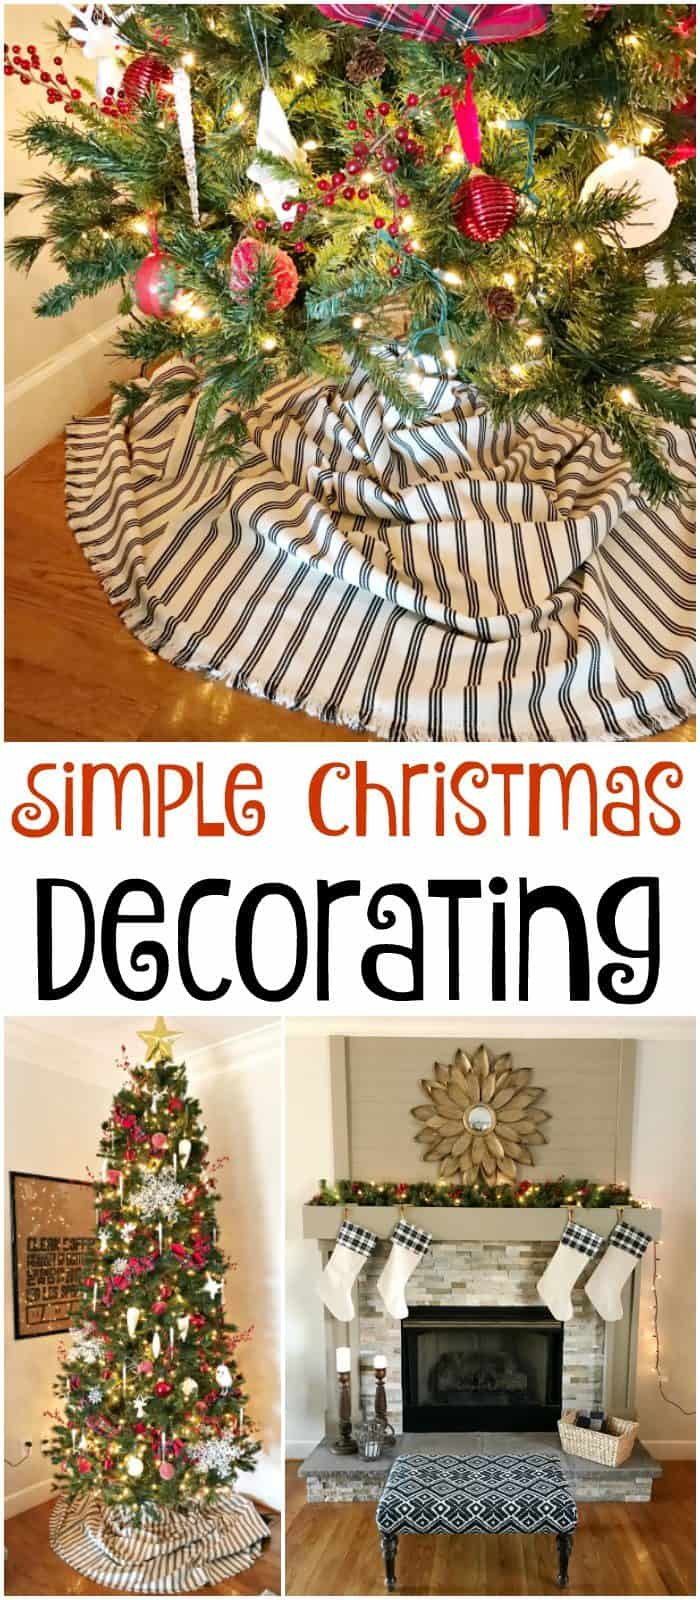 Simple Christmas Decorating tips and tricks